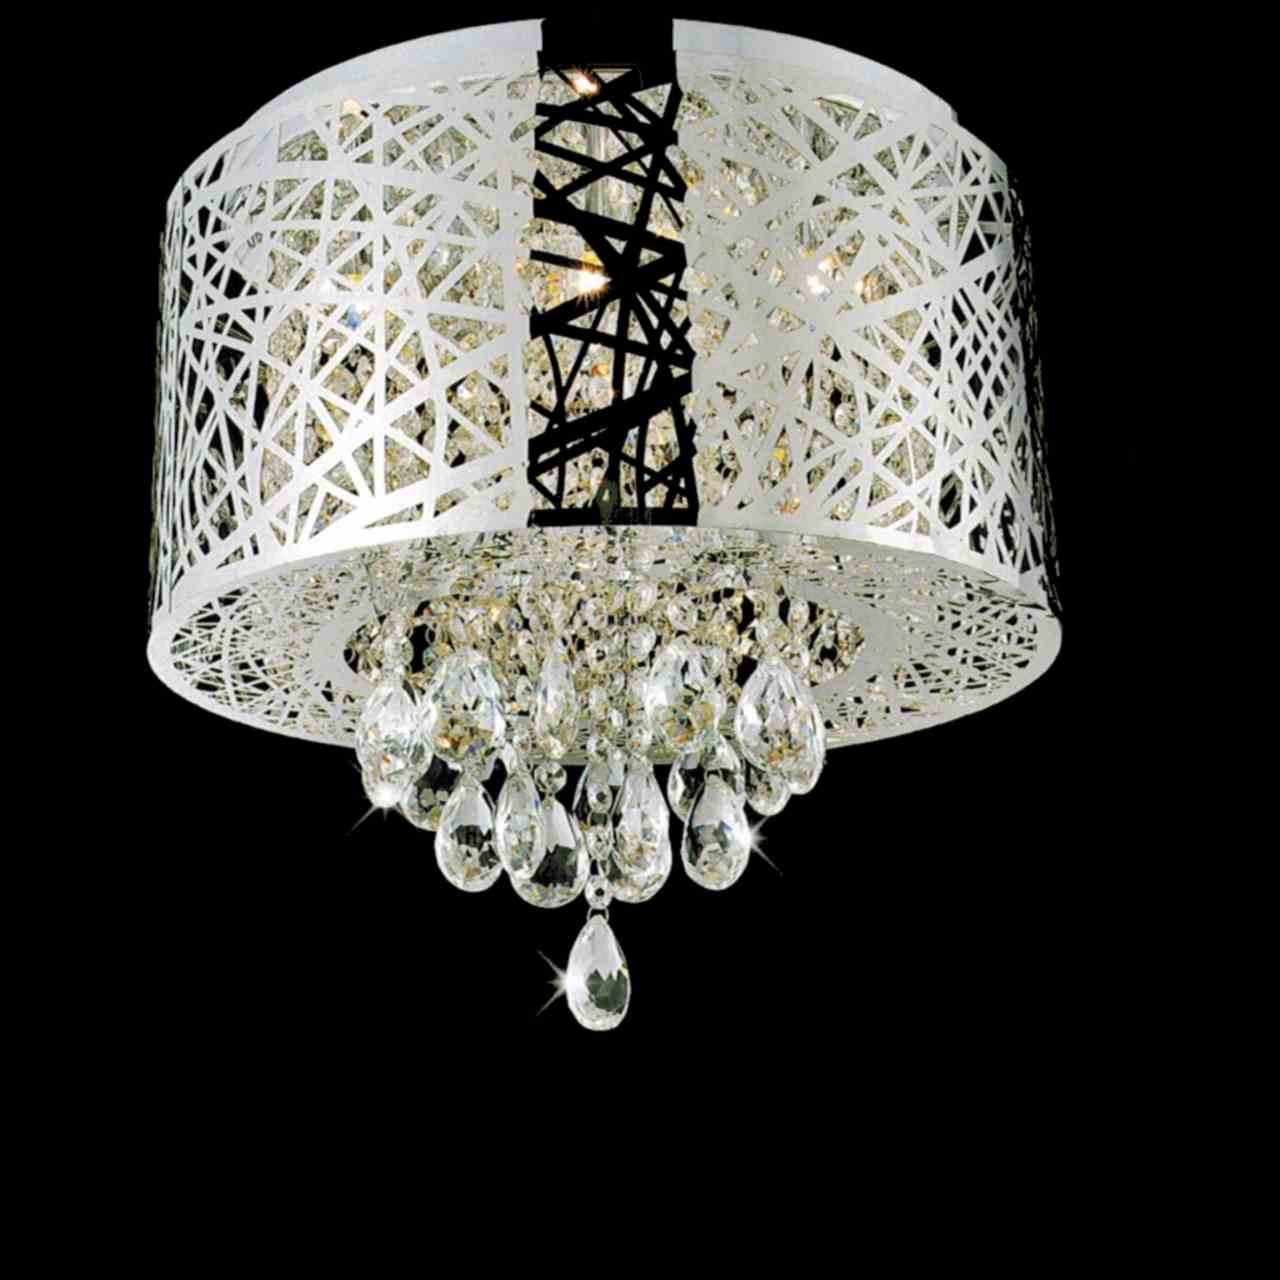 Brizzo lighting stores 16 web modern laser cut drum shade picture of 16 web modern laser cut drum shade crystal round flush mount chandelier stainless arubaitofo Choice Image